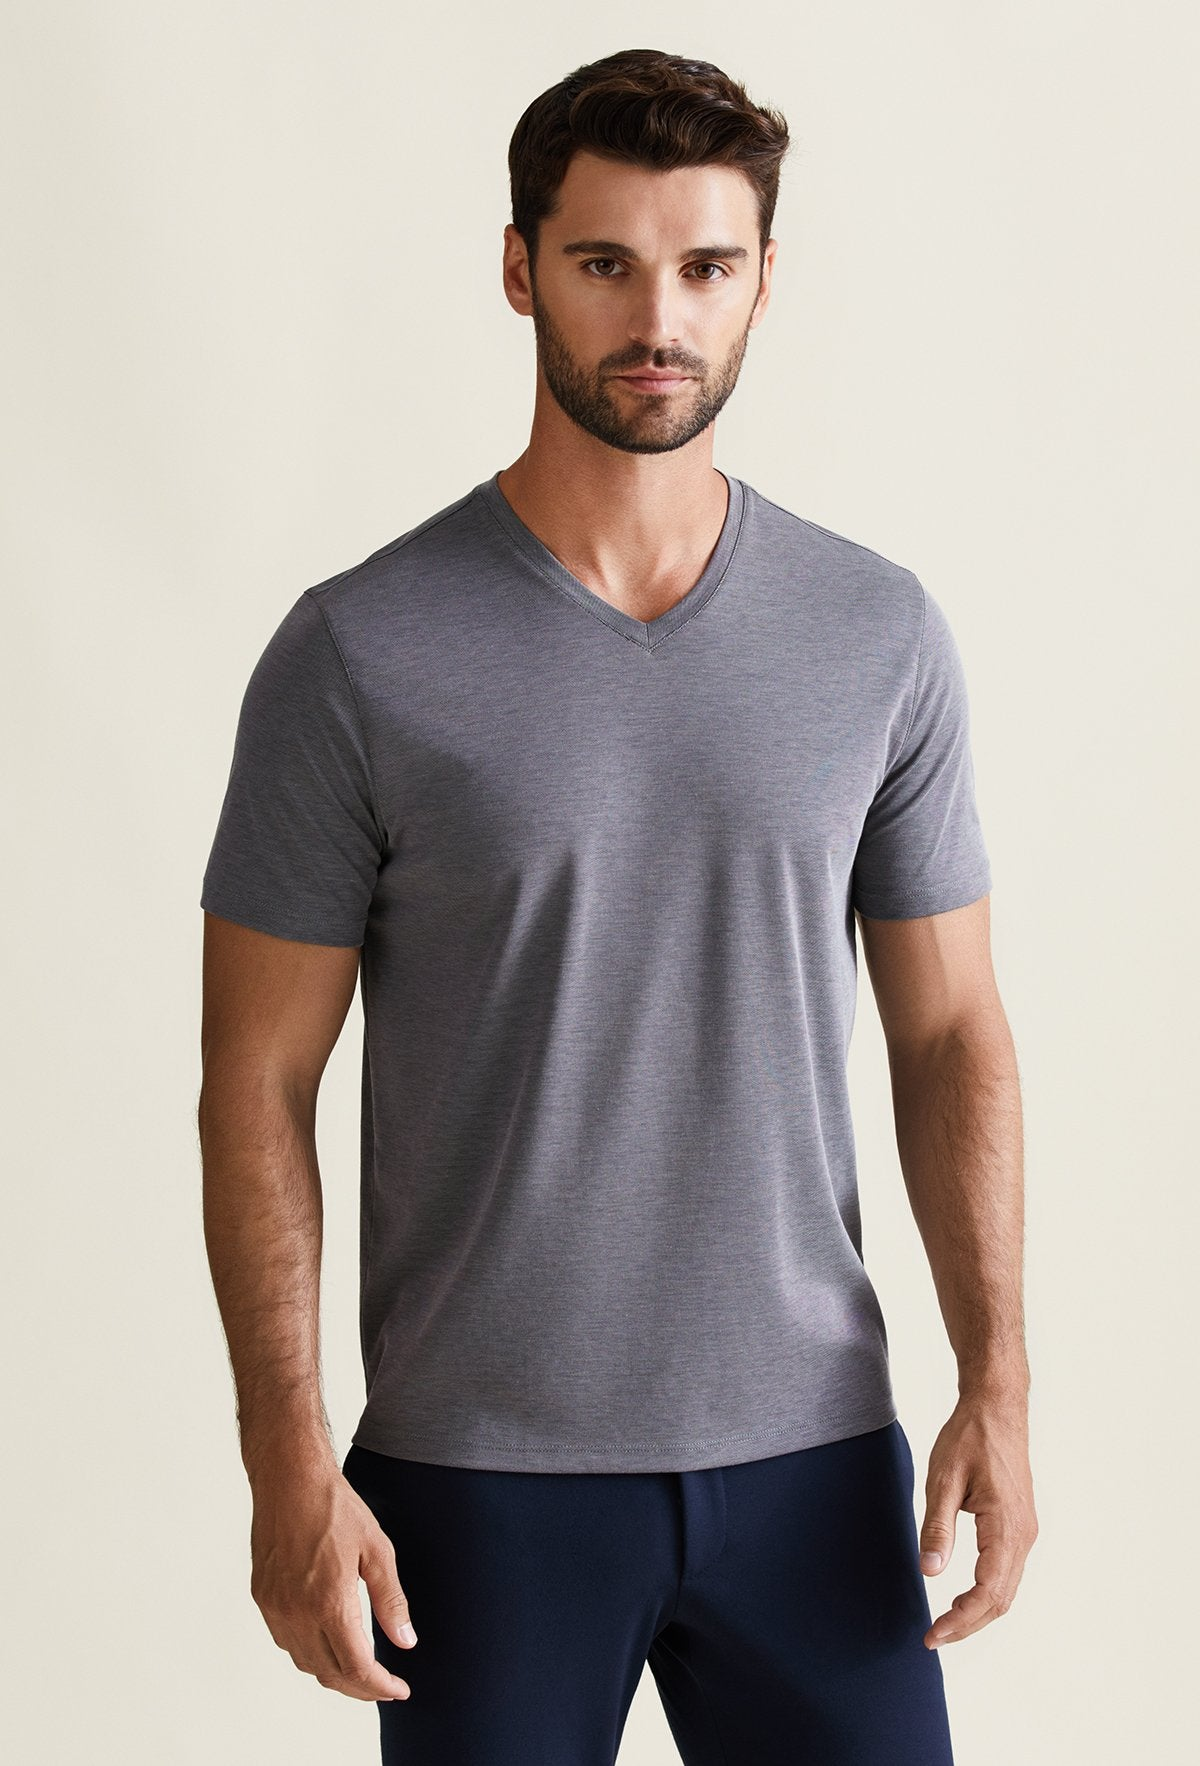 Men's Charcoal Pima Cotton V-Neck T-Shirt - Peruvian Cotton Blend